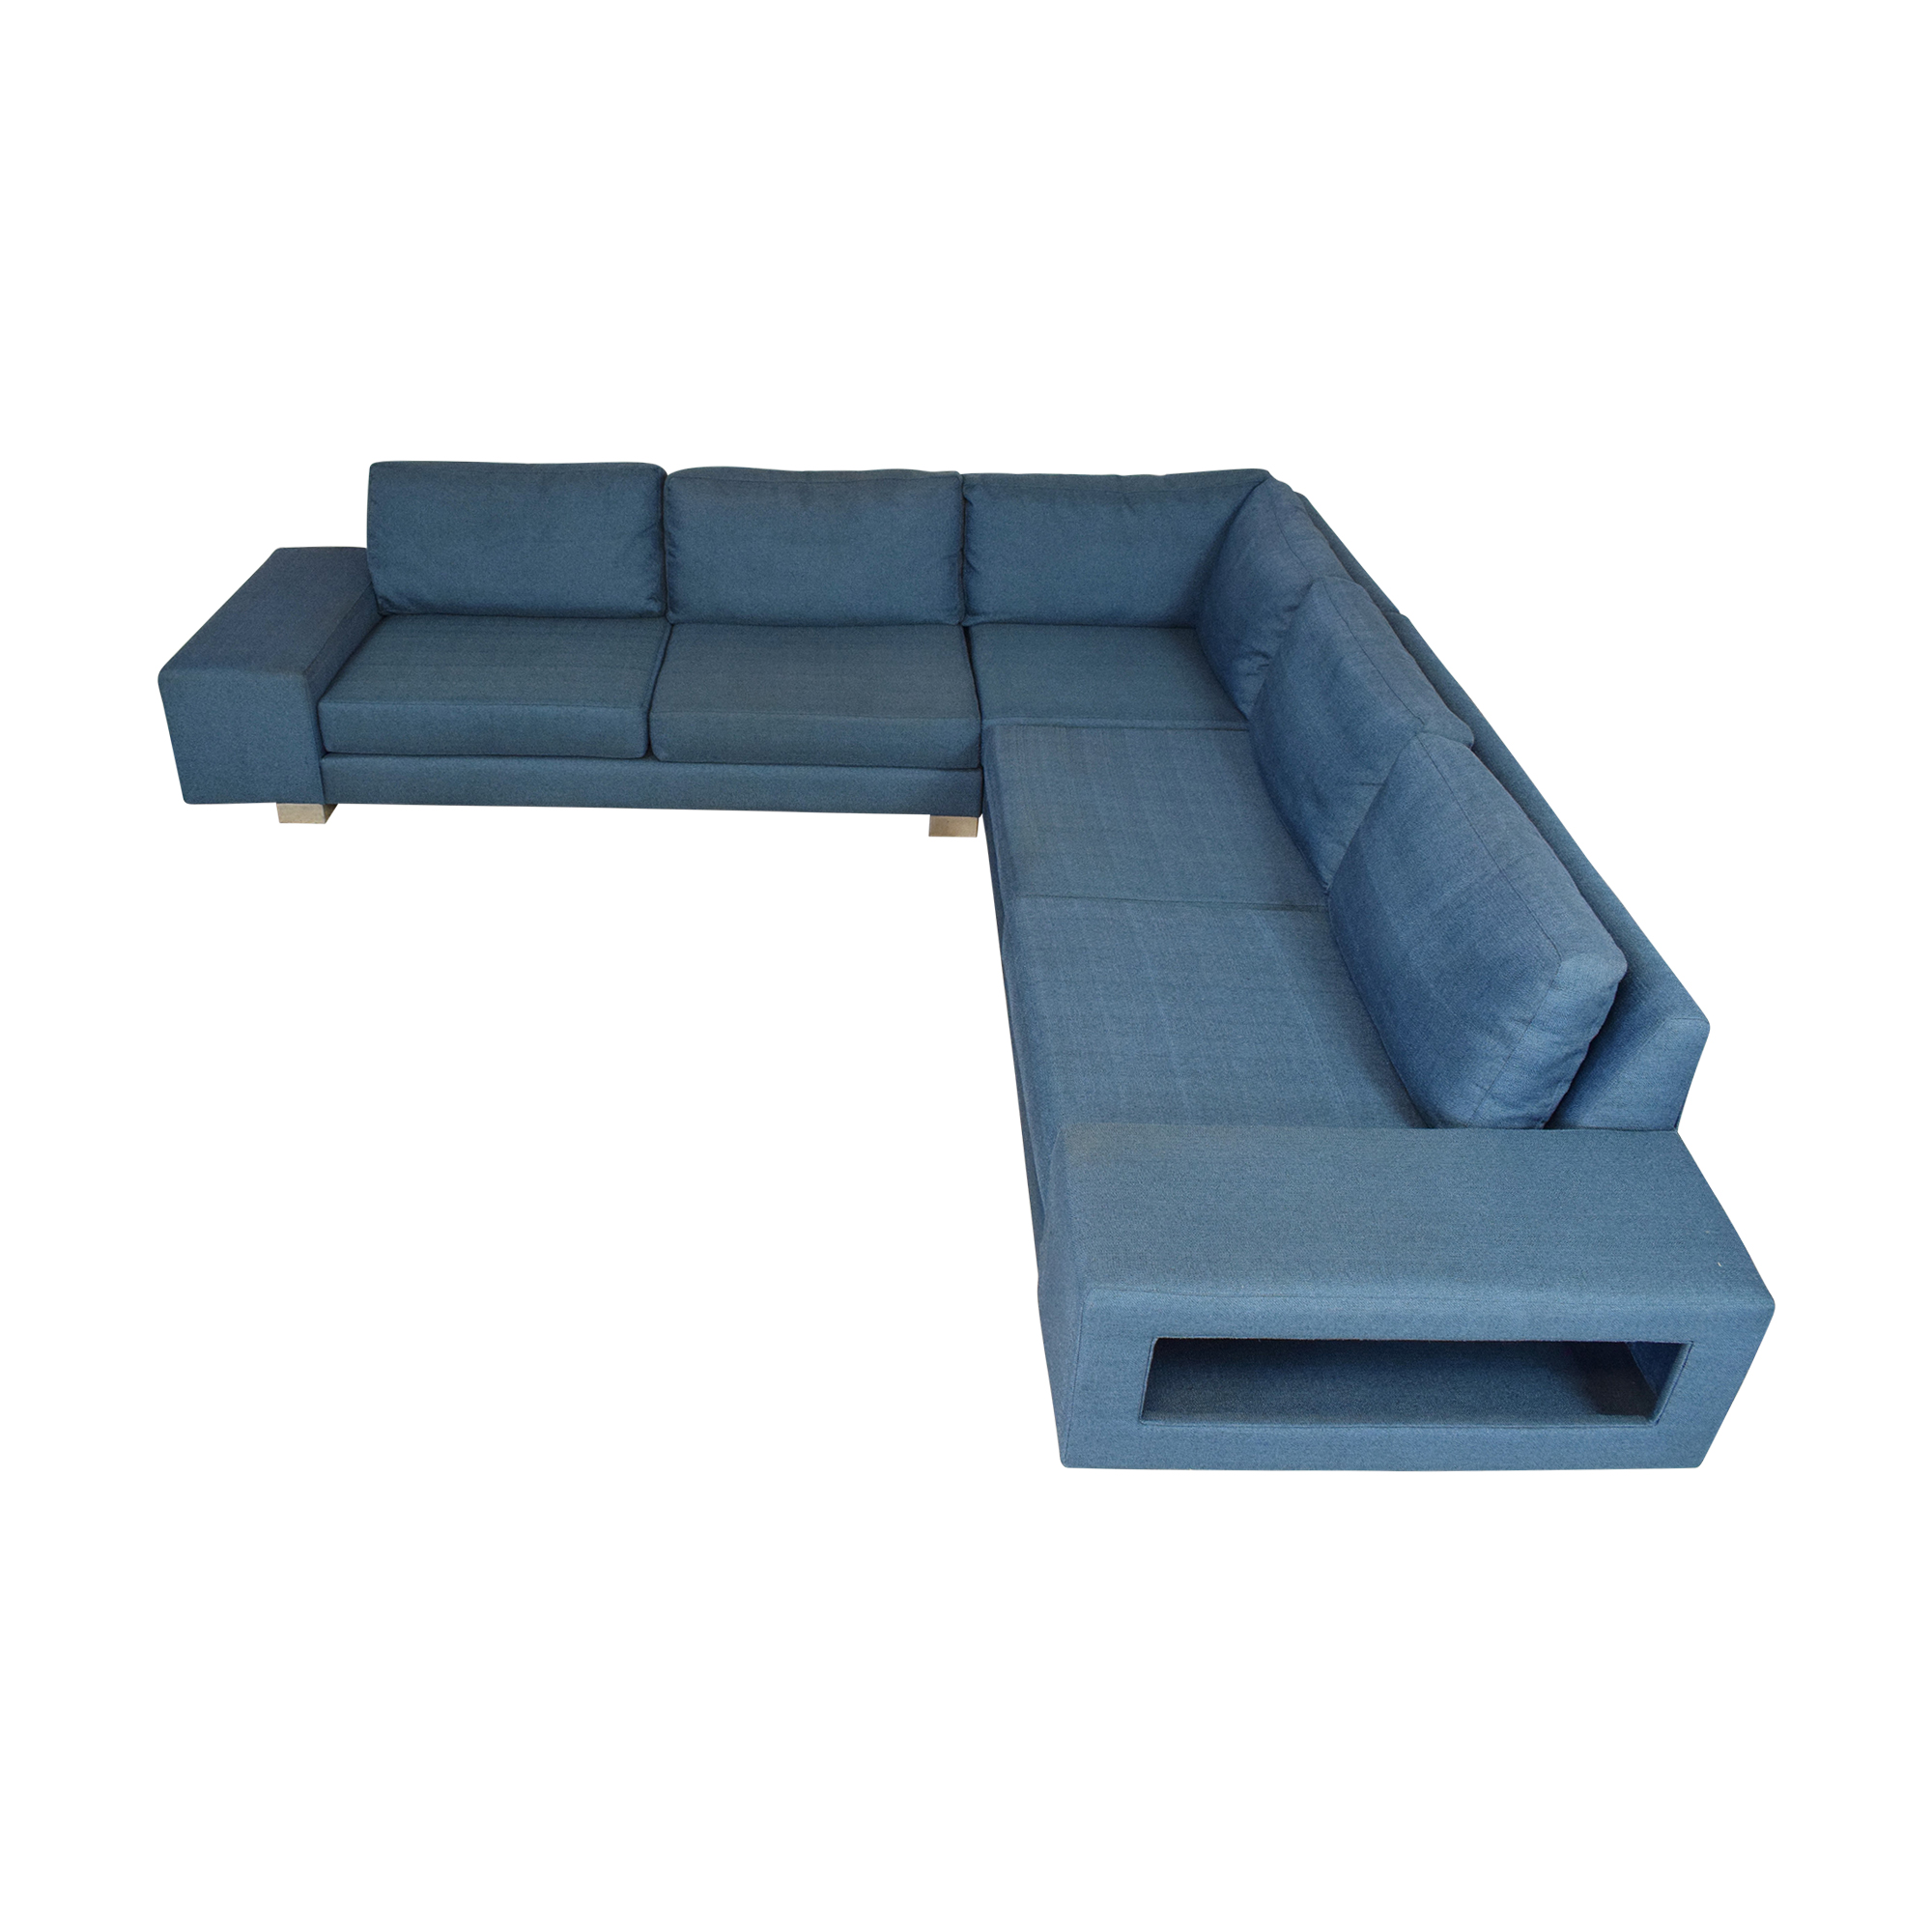 Viesso Strata Storage Sectional Sofa sale